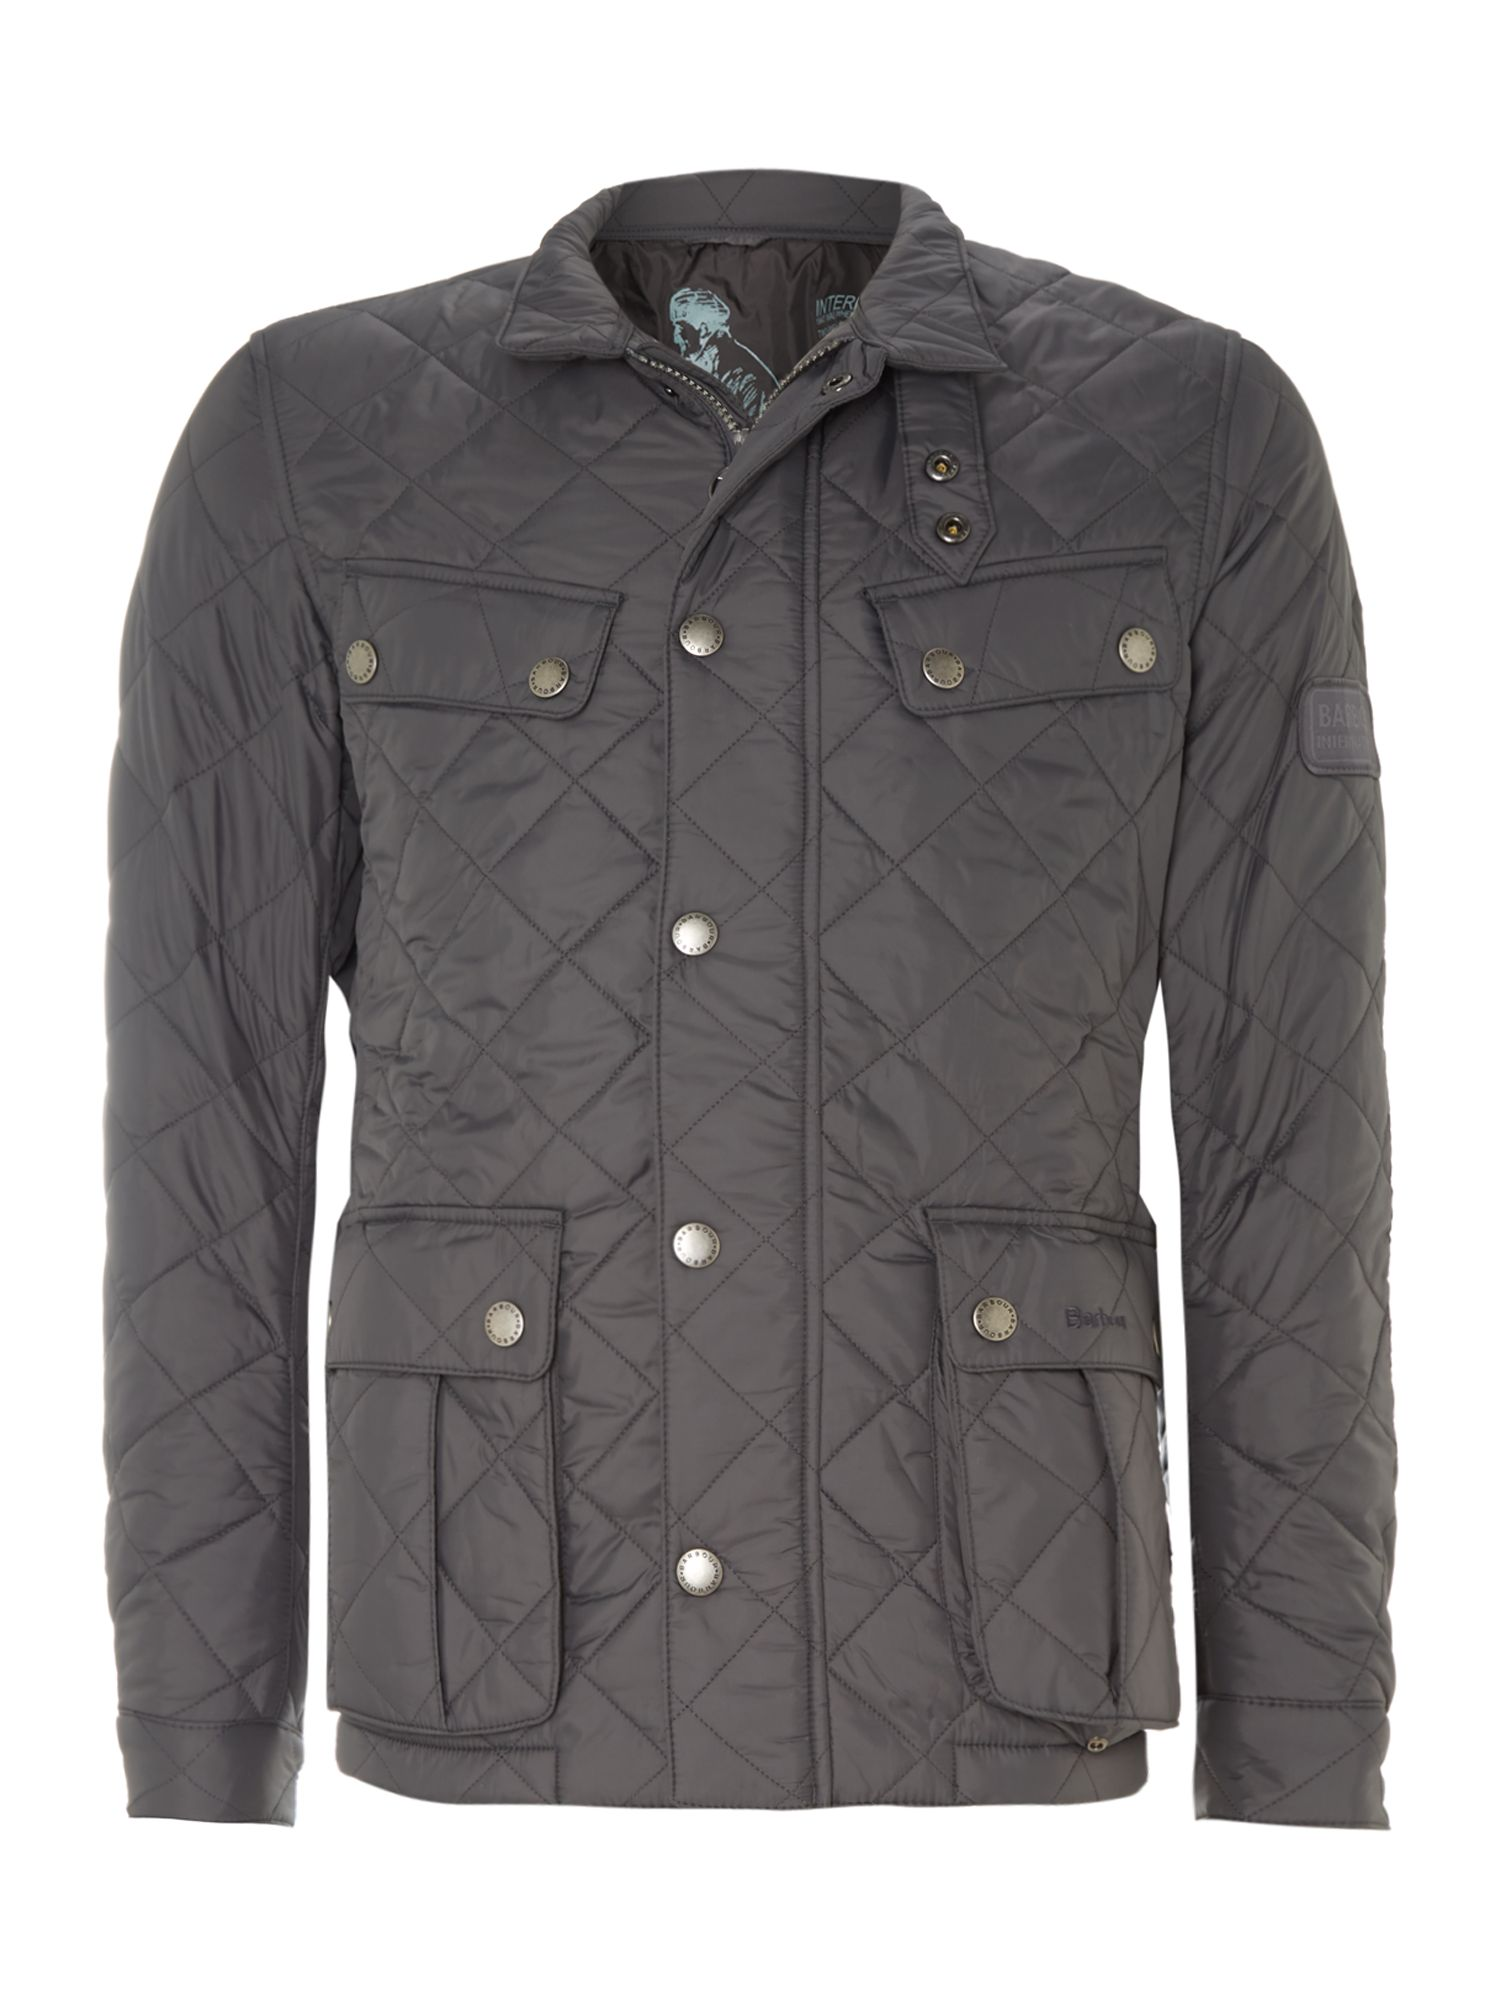 Mens Barbour Ariel Quilted Jacket Charcoal